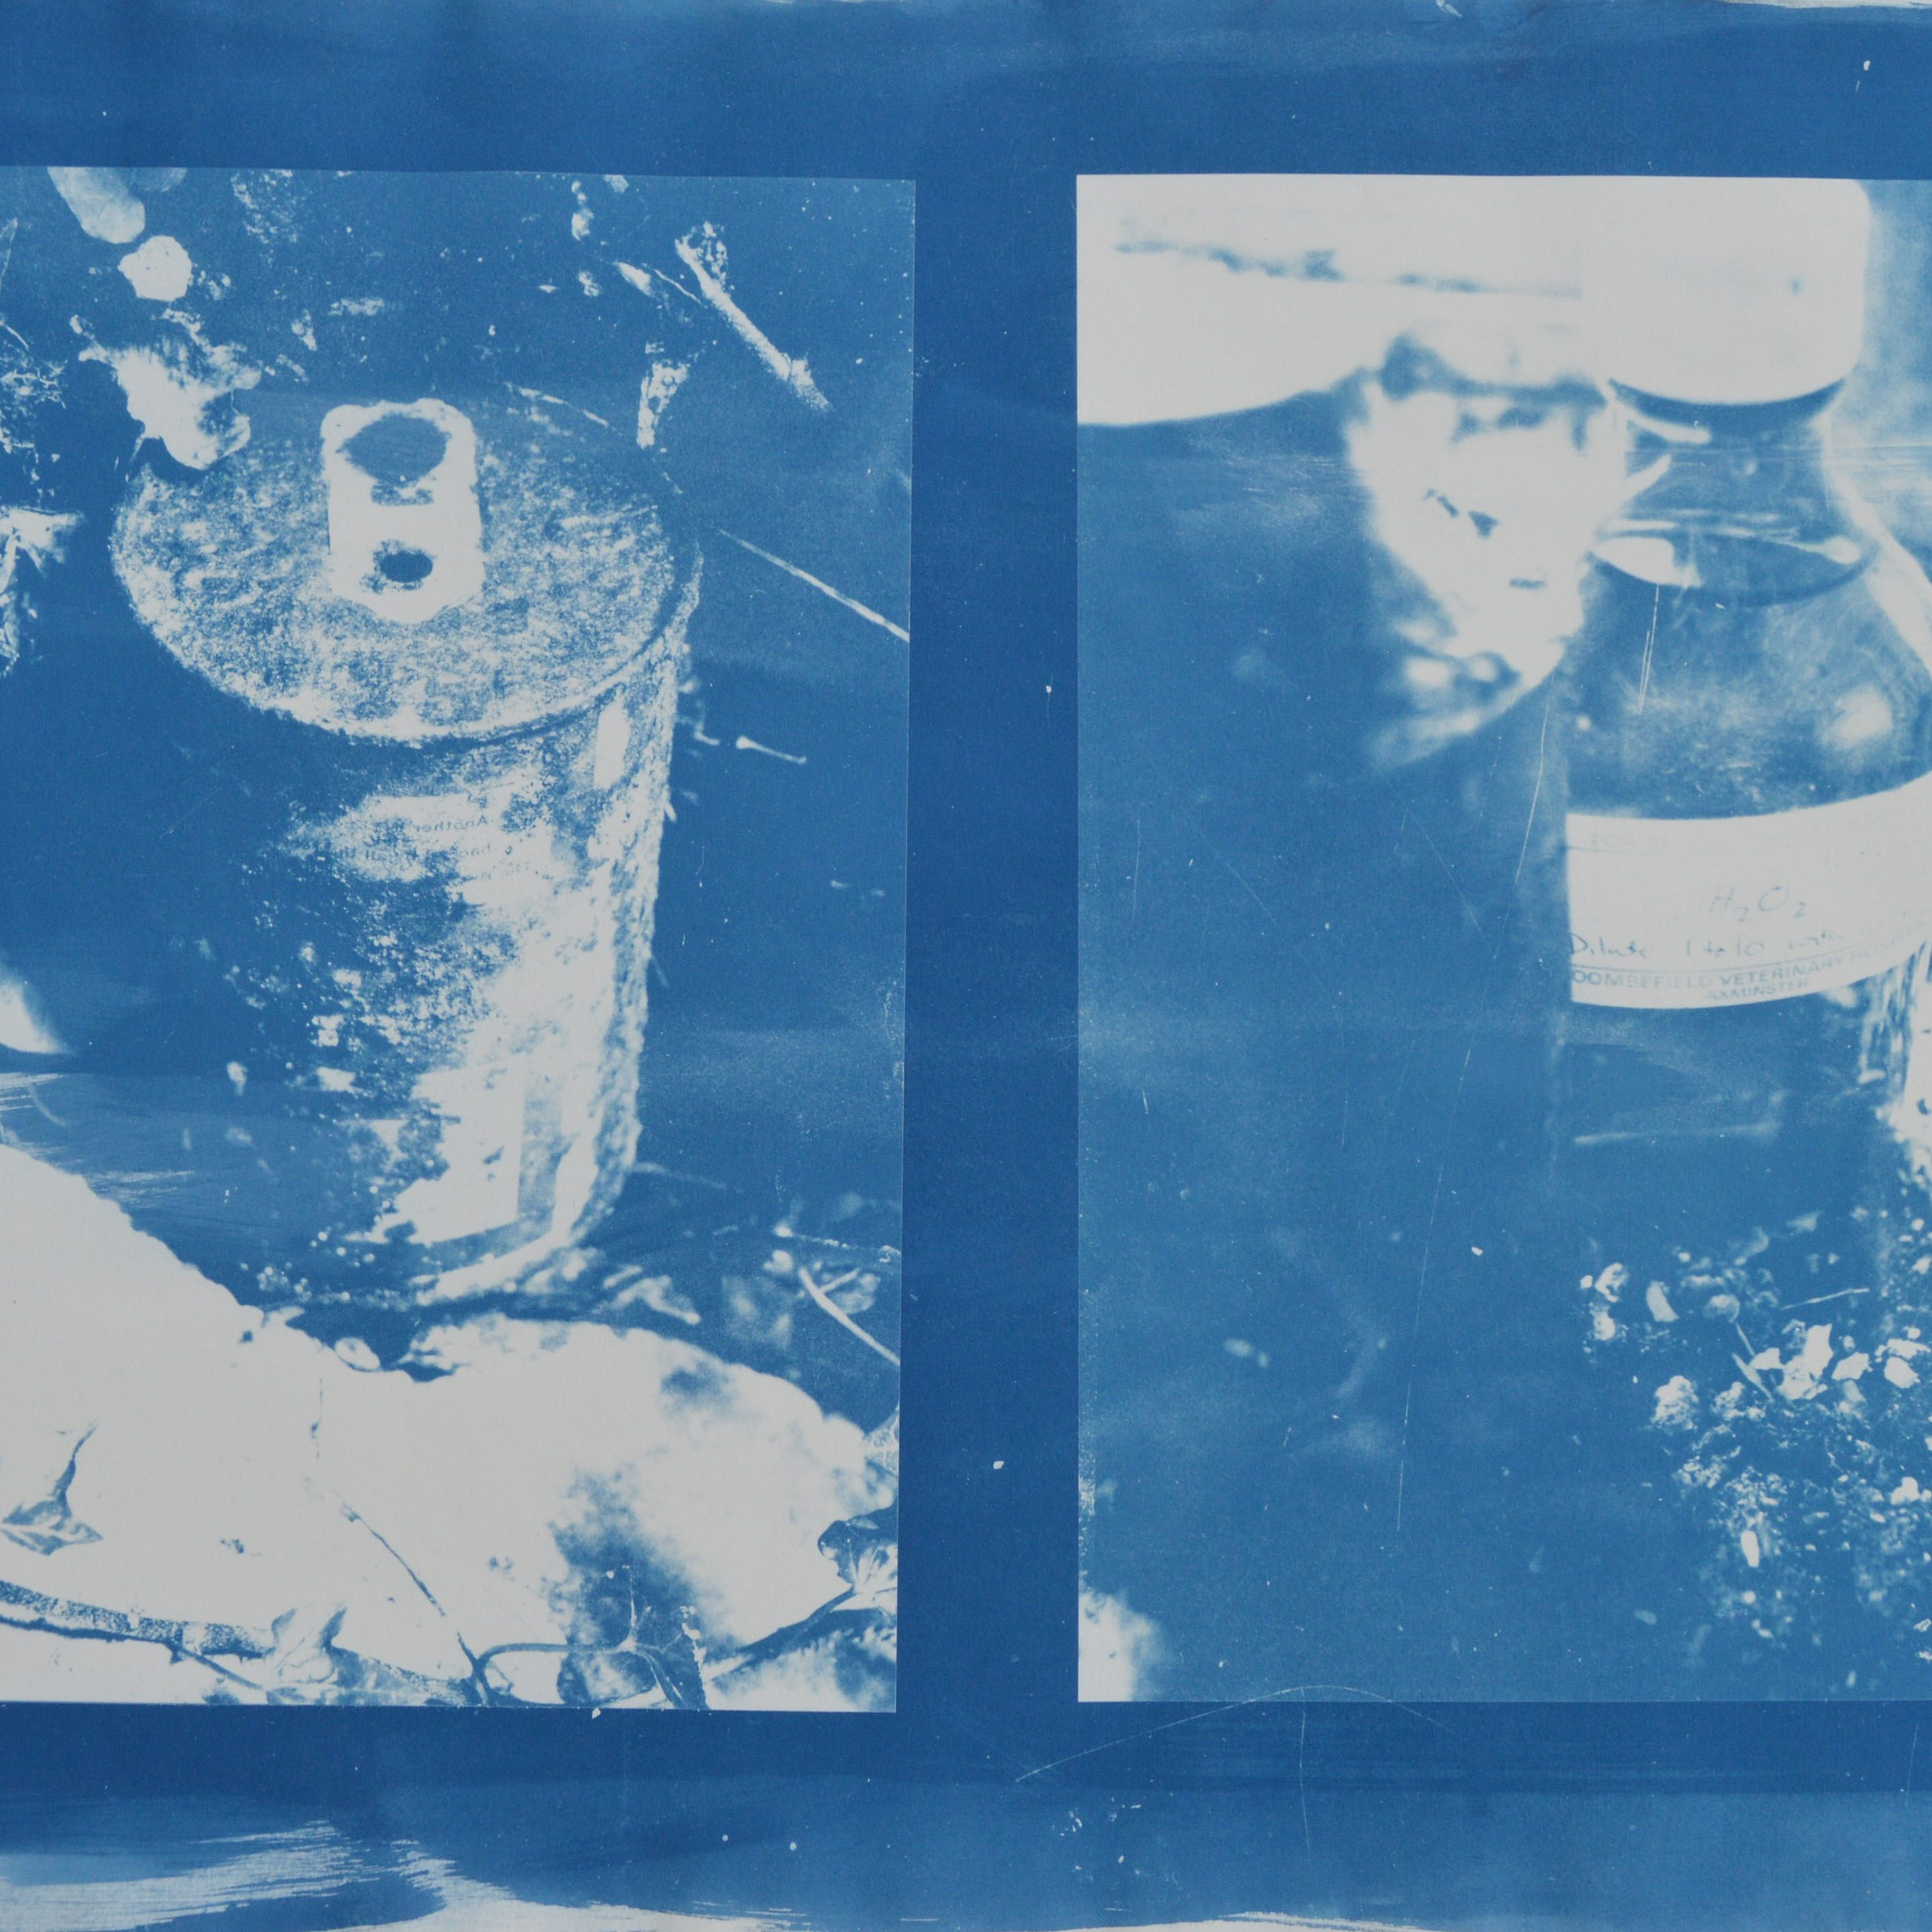 A blue and white cyanotype print showing bottles and cans.